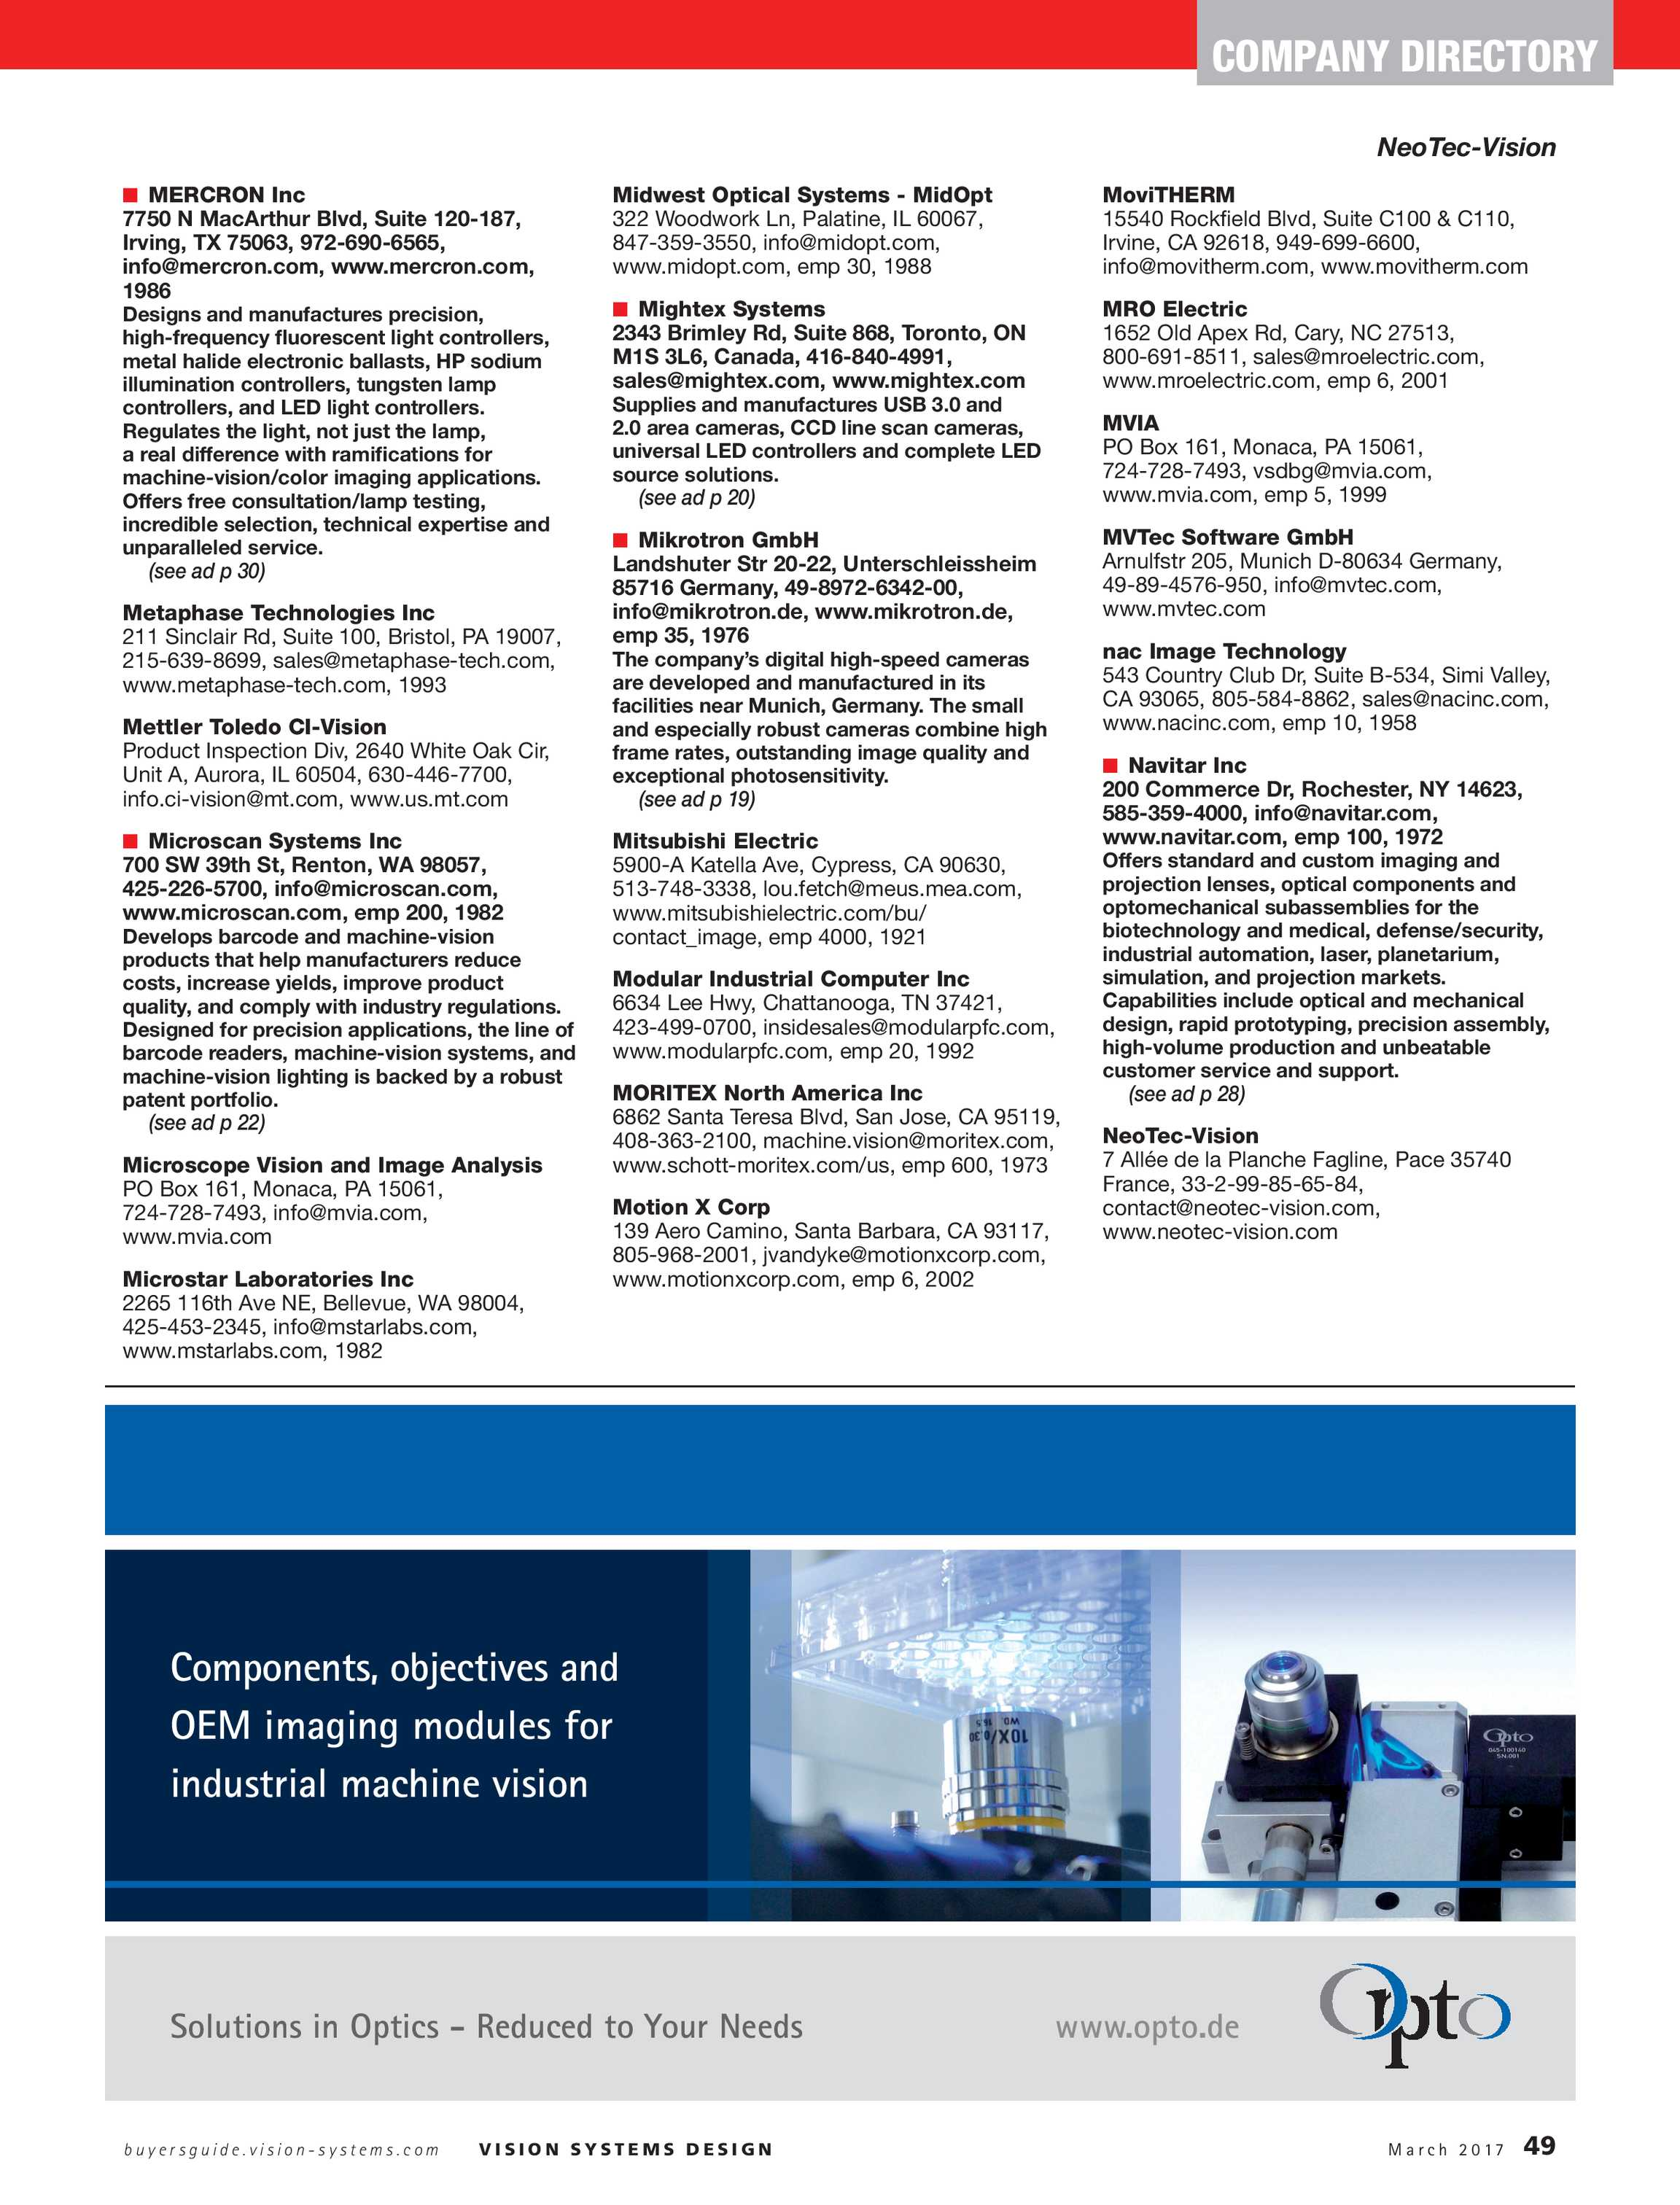 Vision Systems - March 2017 - page 49